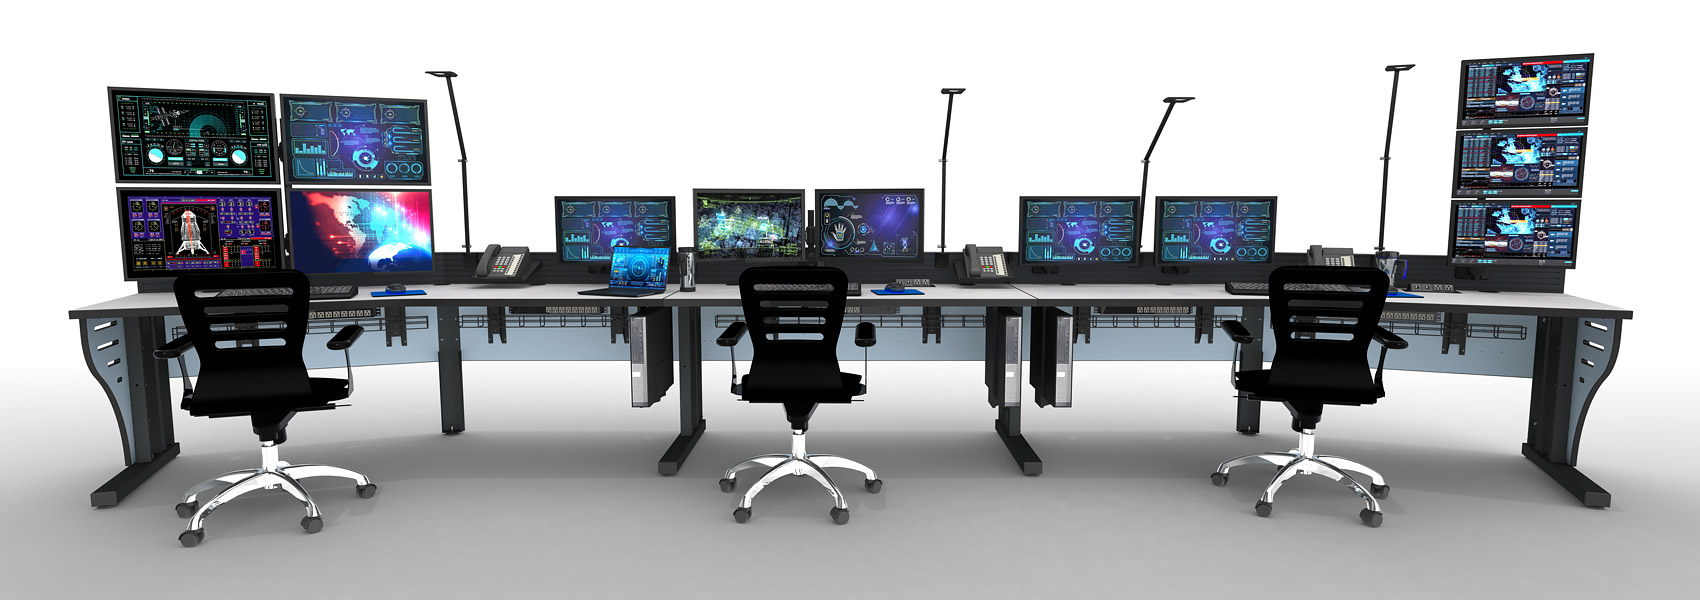 summit-edge-control-room-furniture-main-feb-2018.jpg